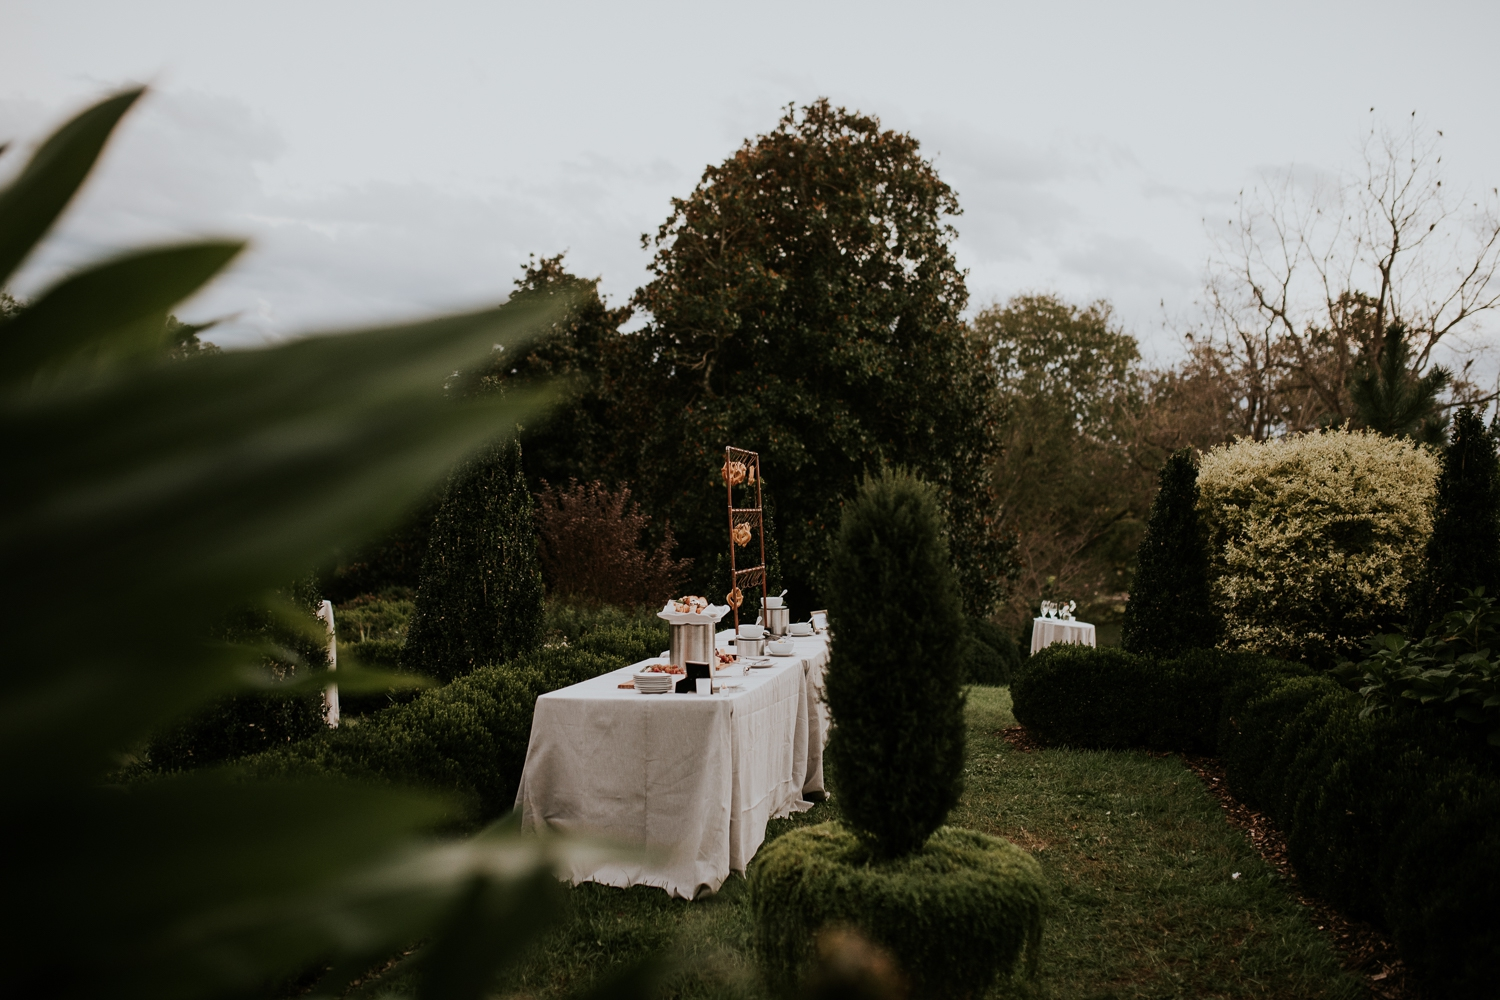 leesburg-virginia-oatlands-historic-house-garden-wedding-photographer 11.jpg